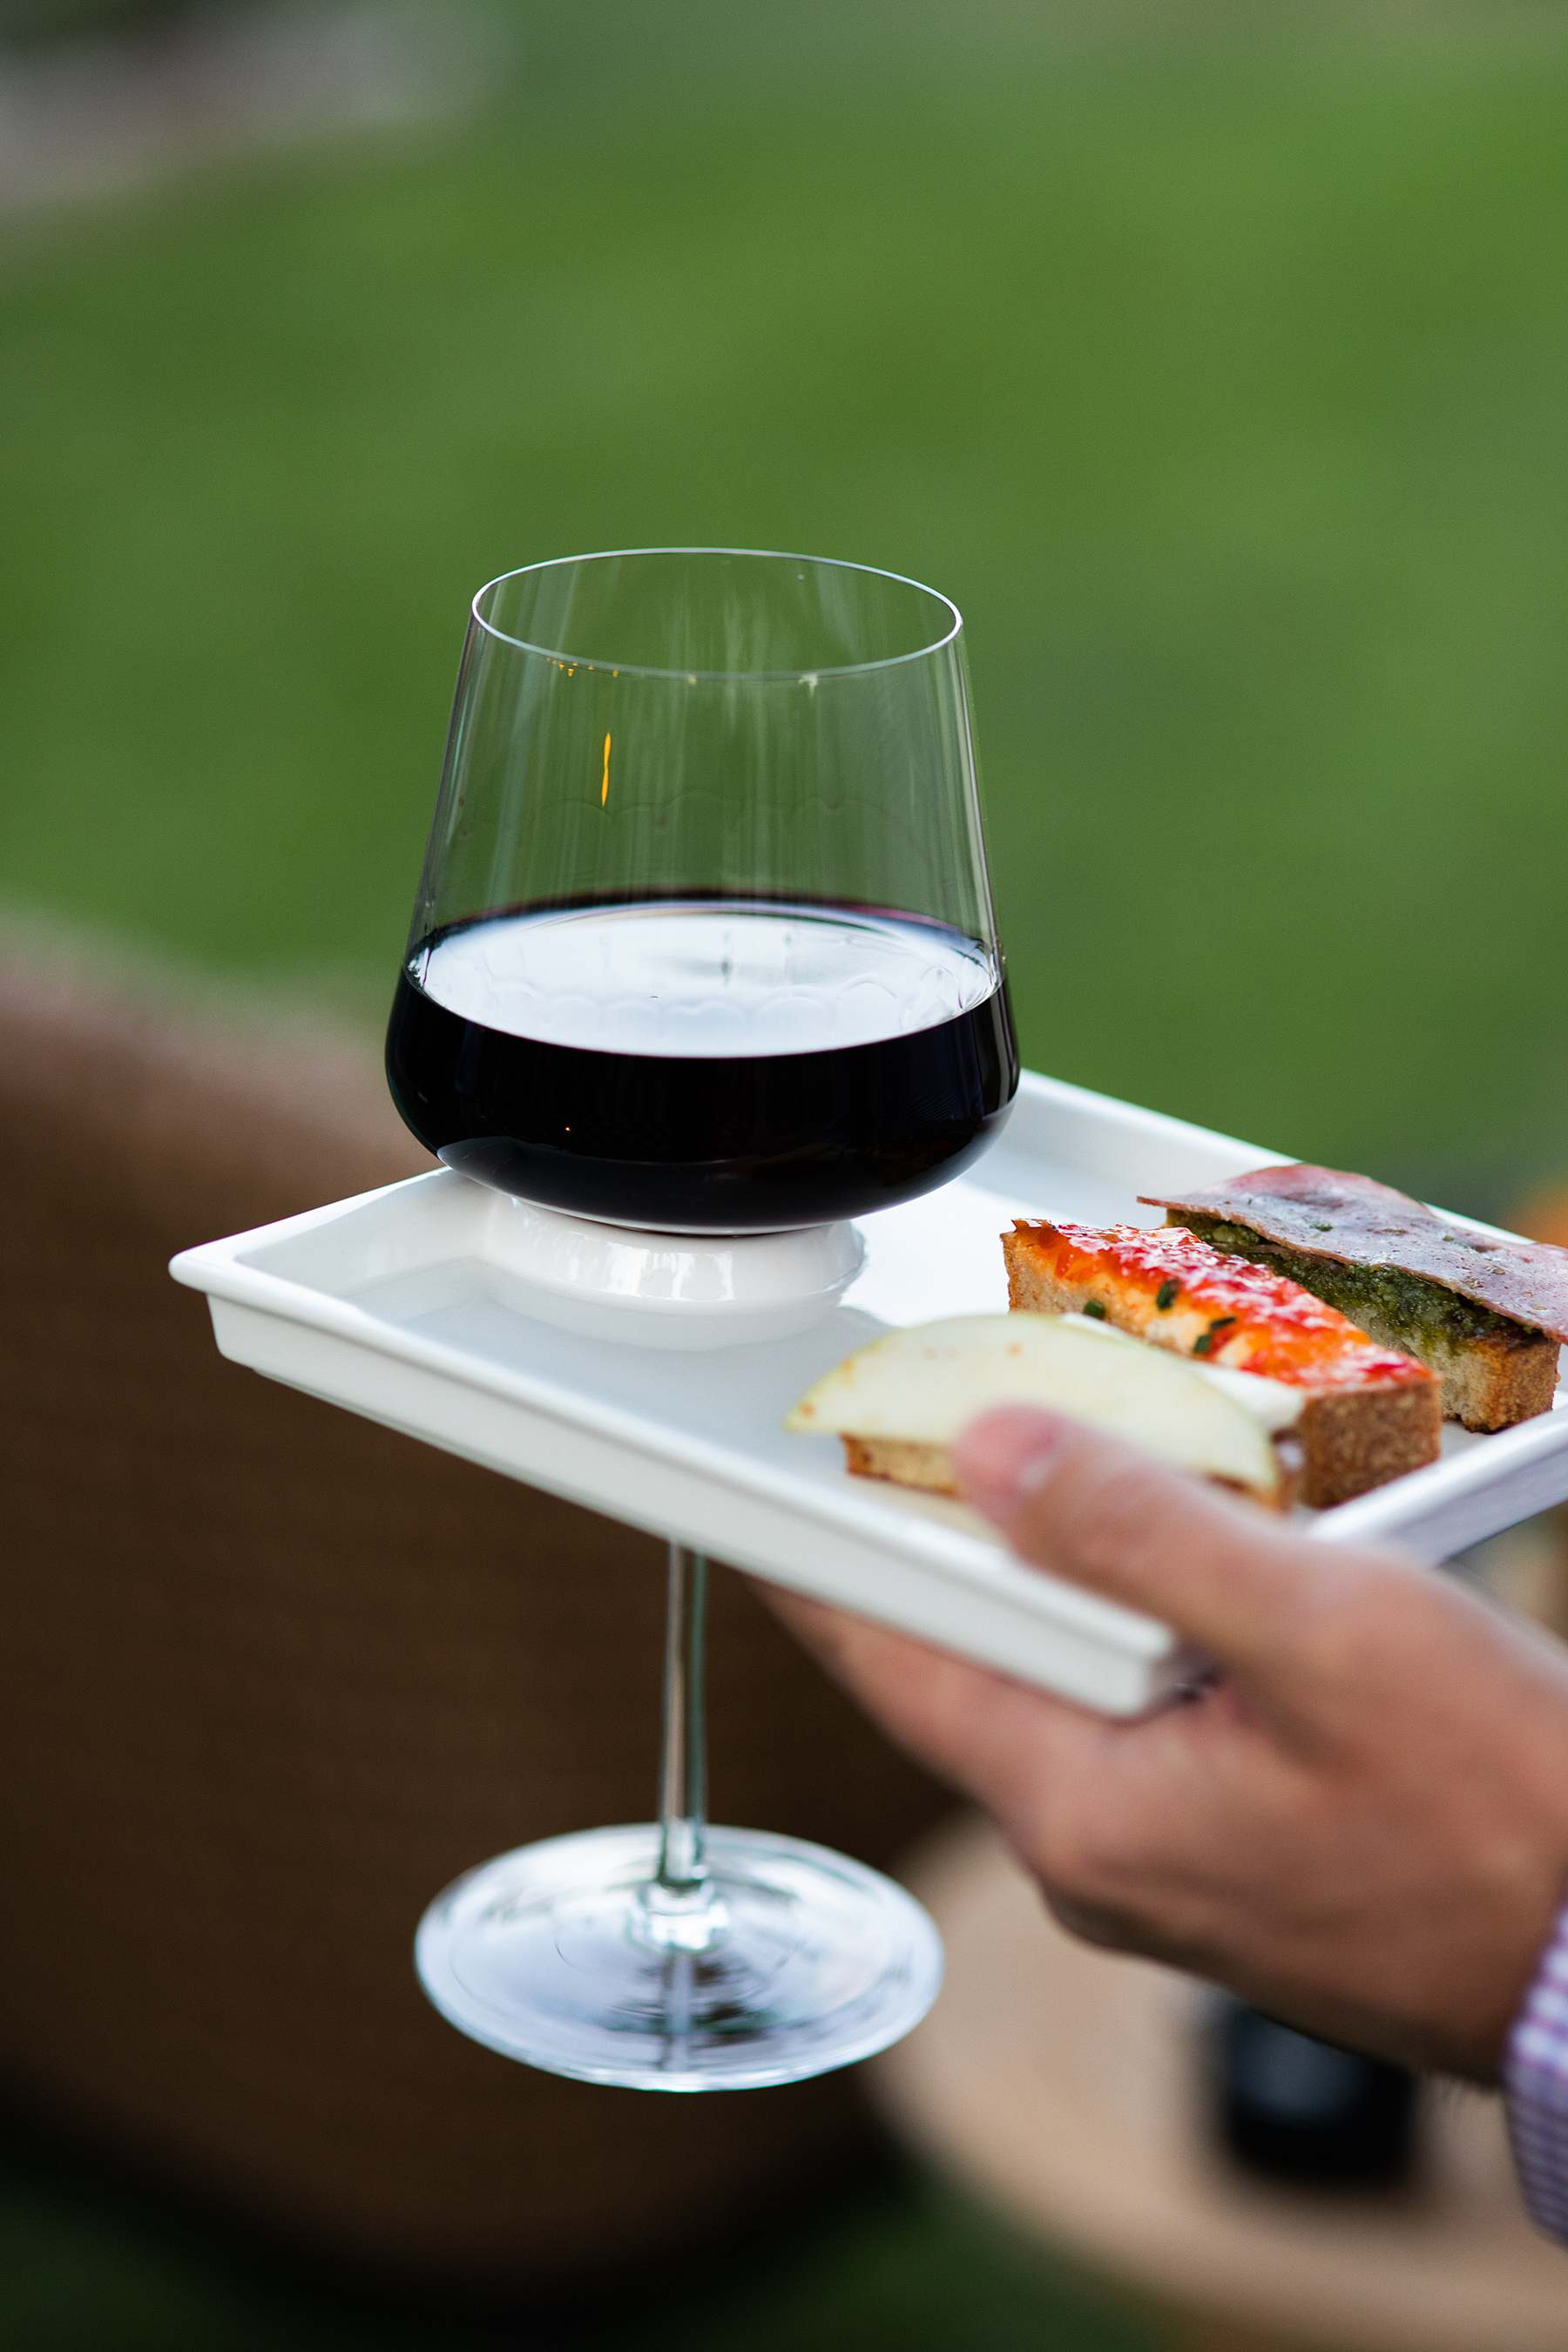 wine cheese appetizer plate handy for guests